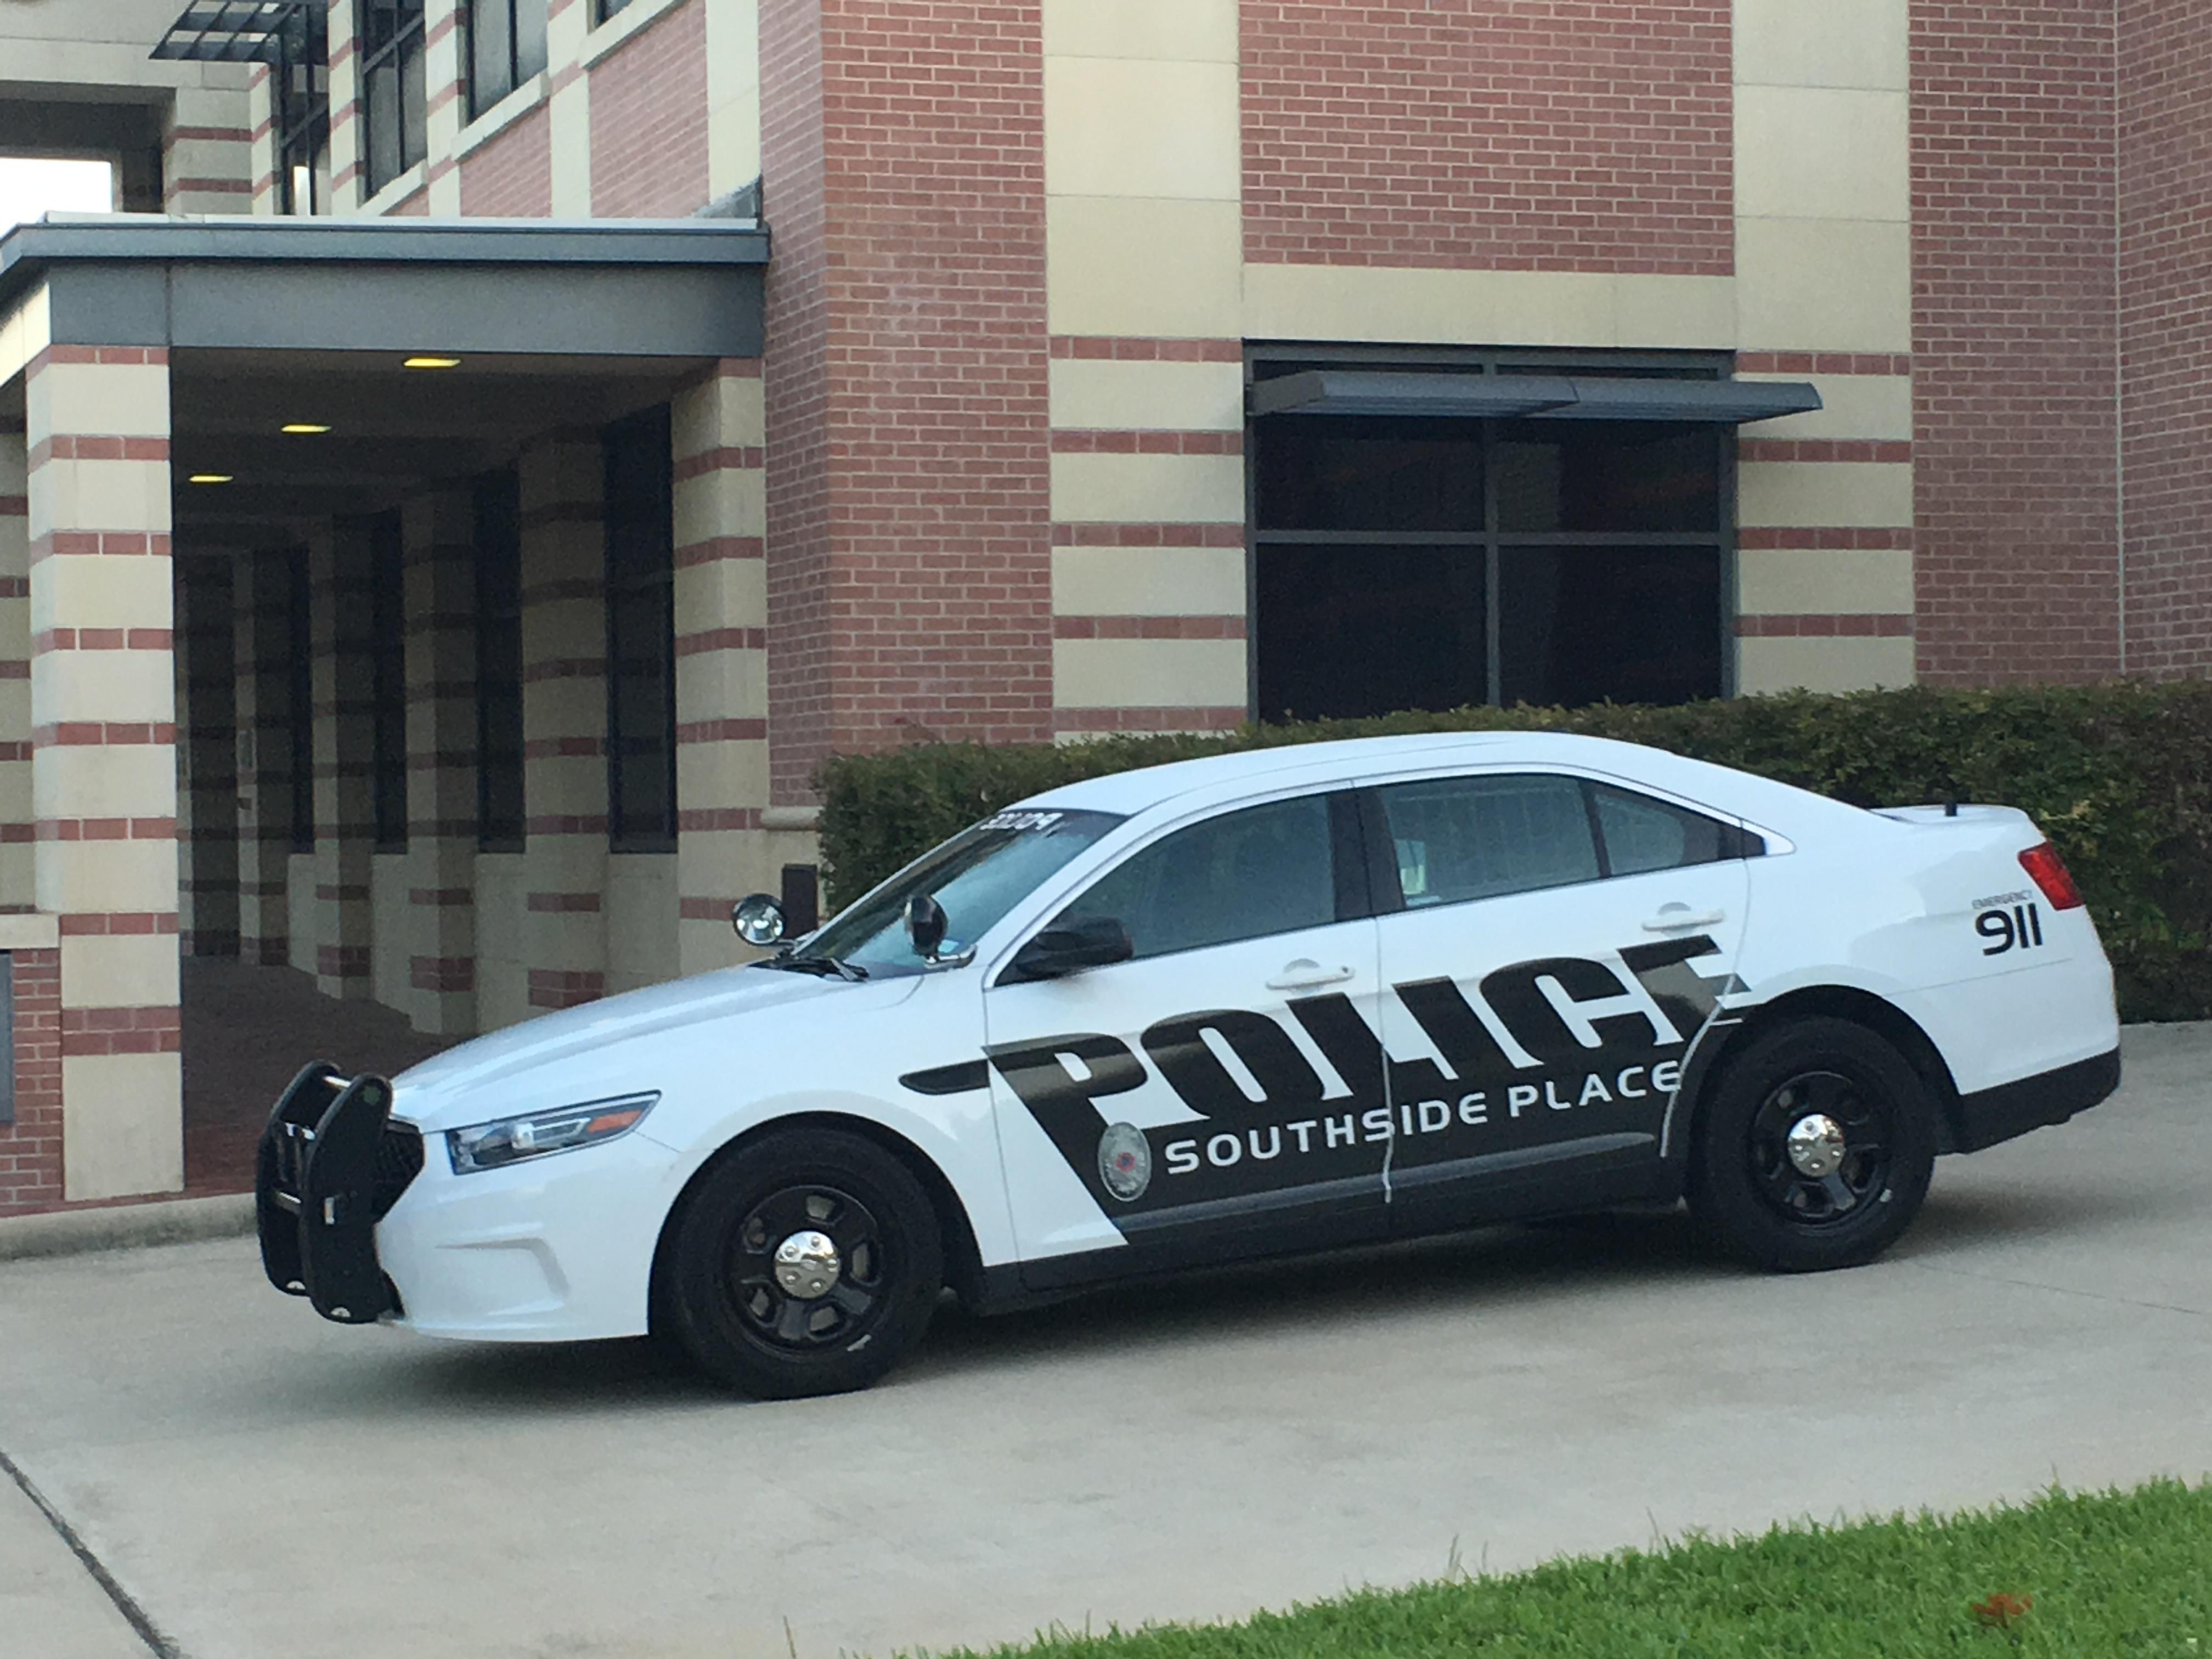 Southside Place Police Department Ford Interceptor Texas Police Cars Ford Police Us Police Car